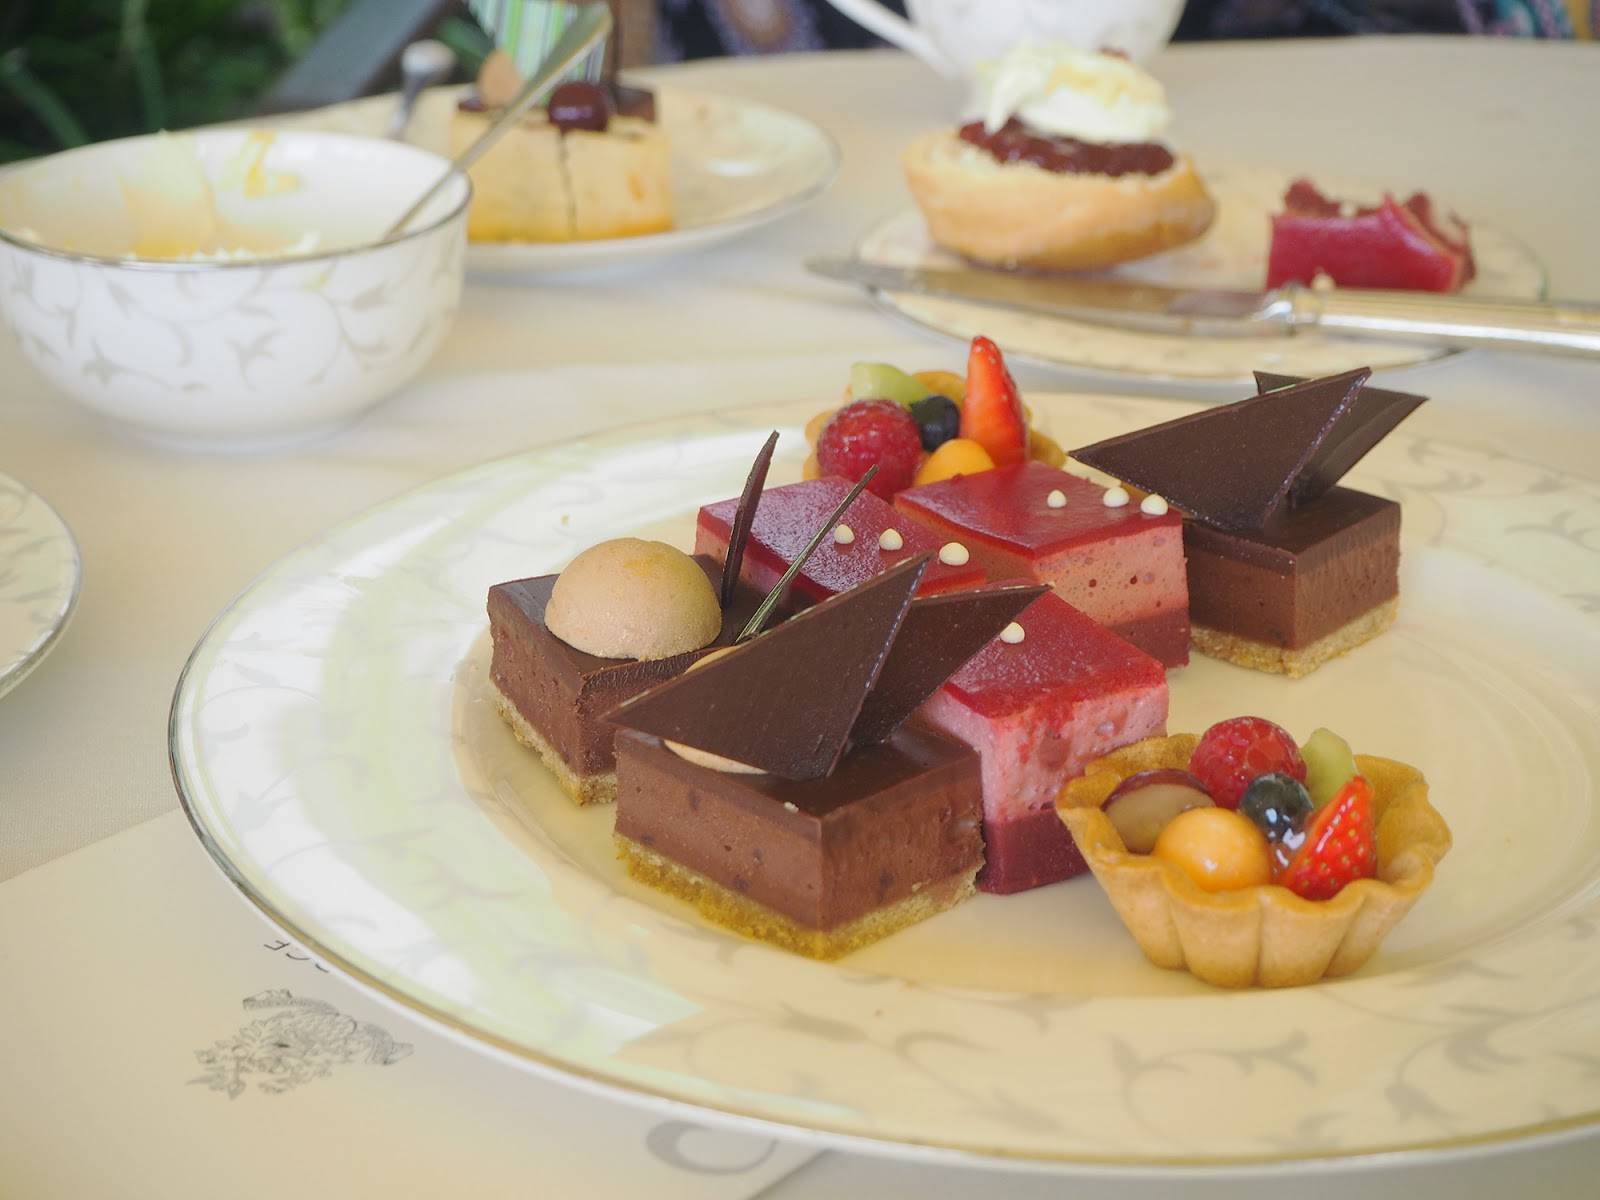 Afternoon tea review at South Lodge in Horsham - cake selection